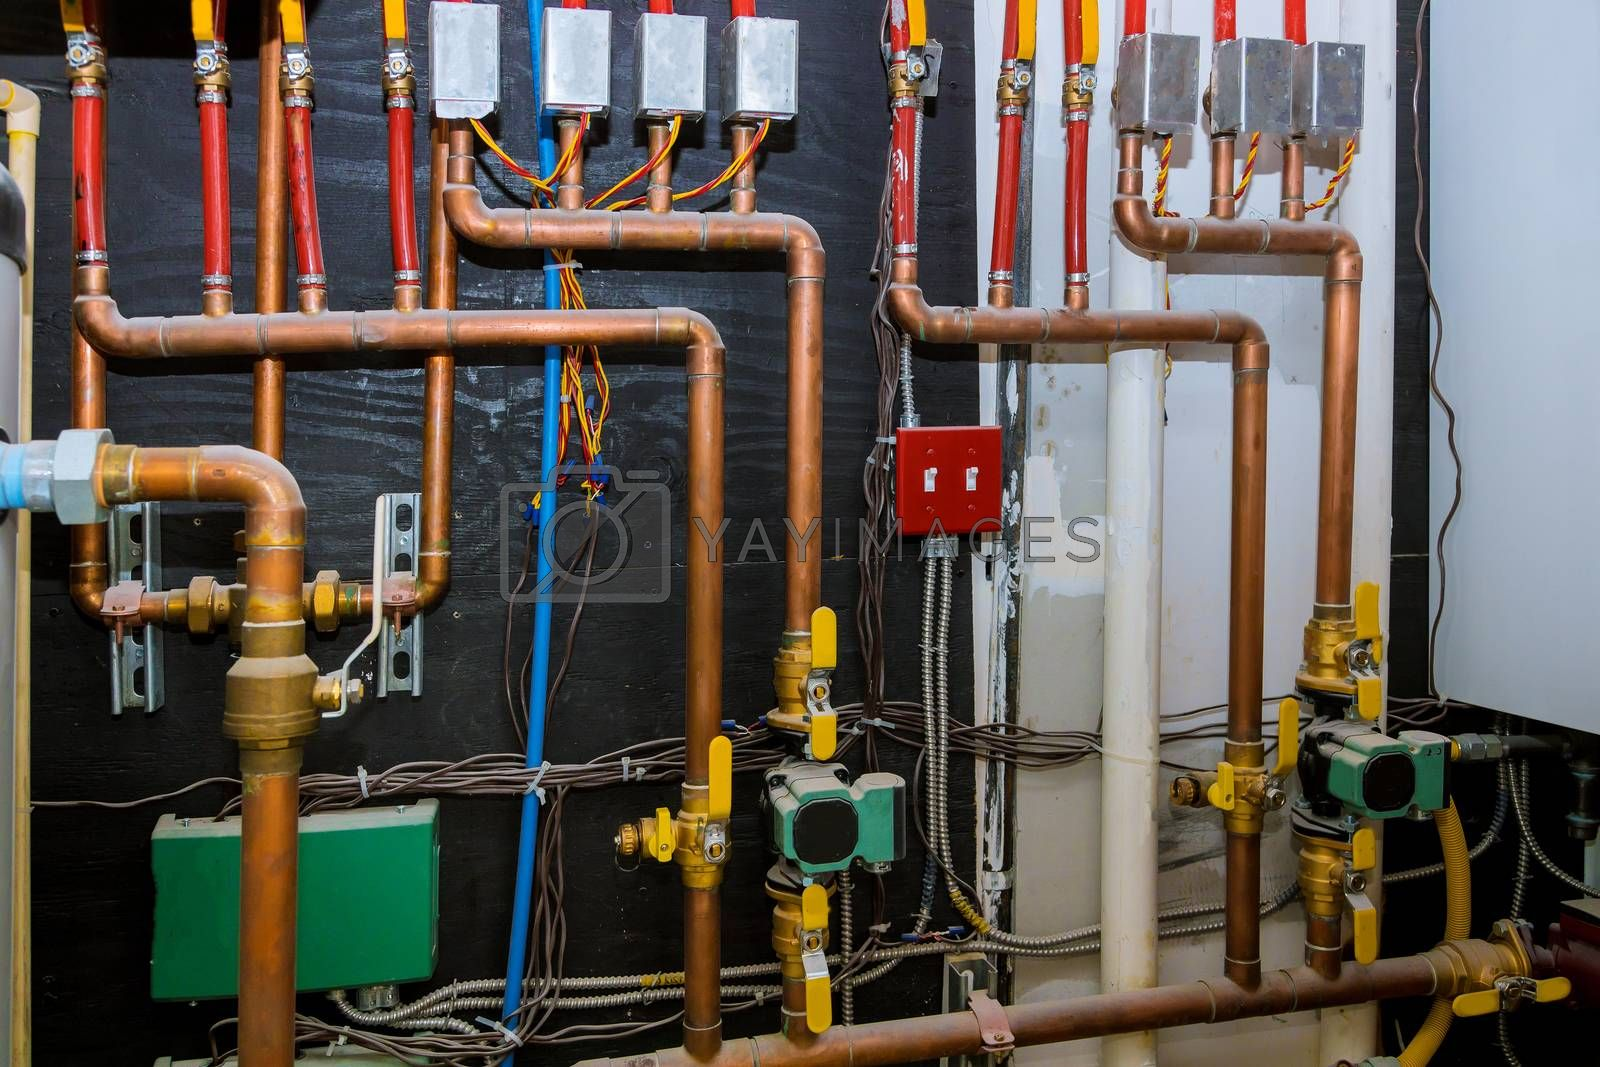 Heating system's copper pipes with ball valves on pipes collector of underfloor heating system pump and pipes